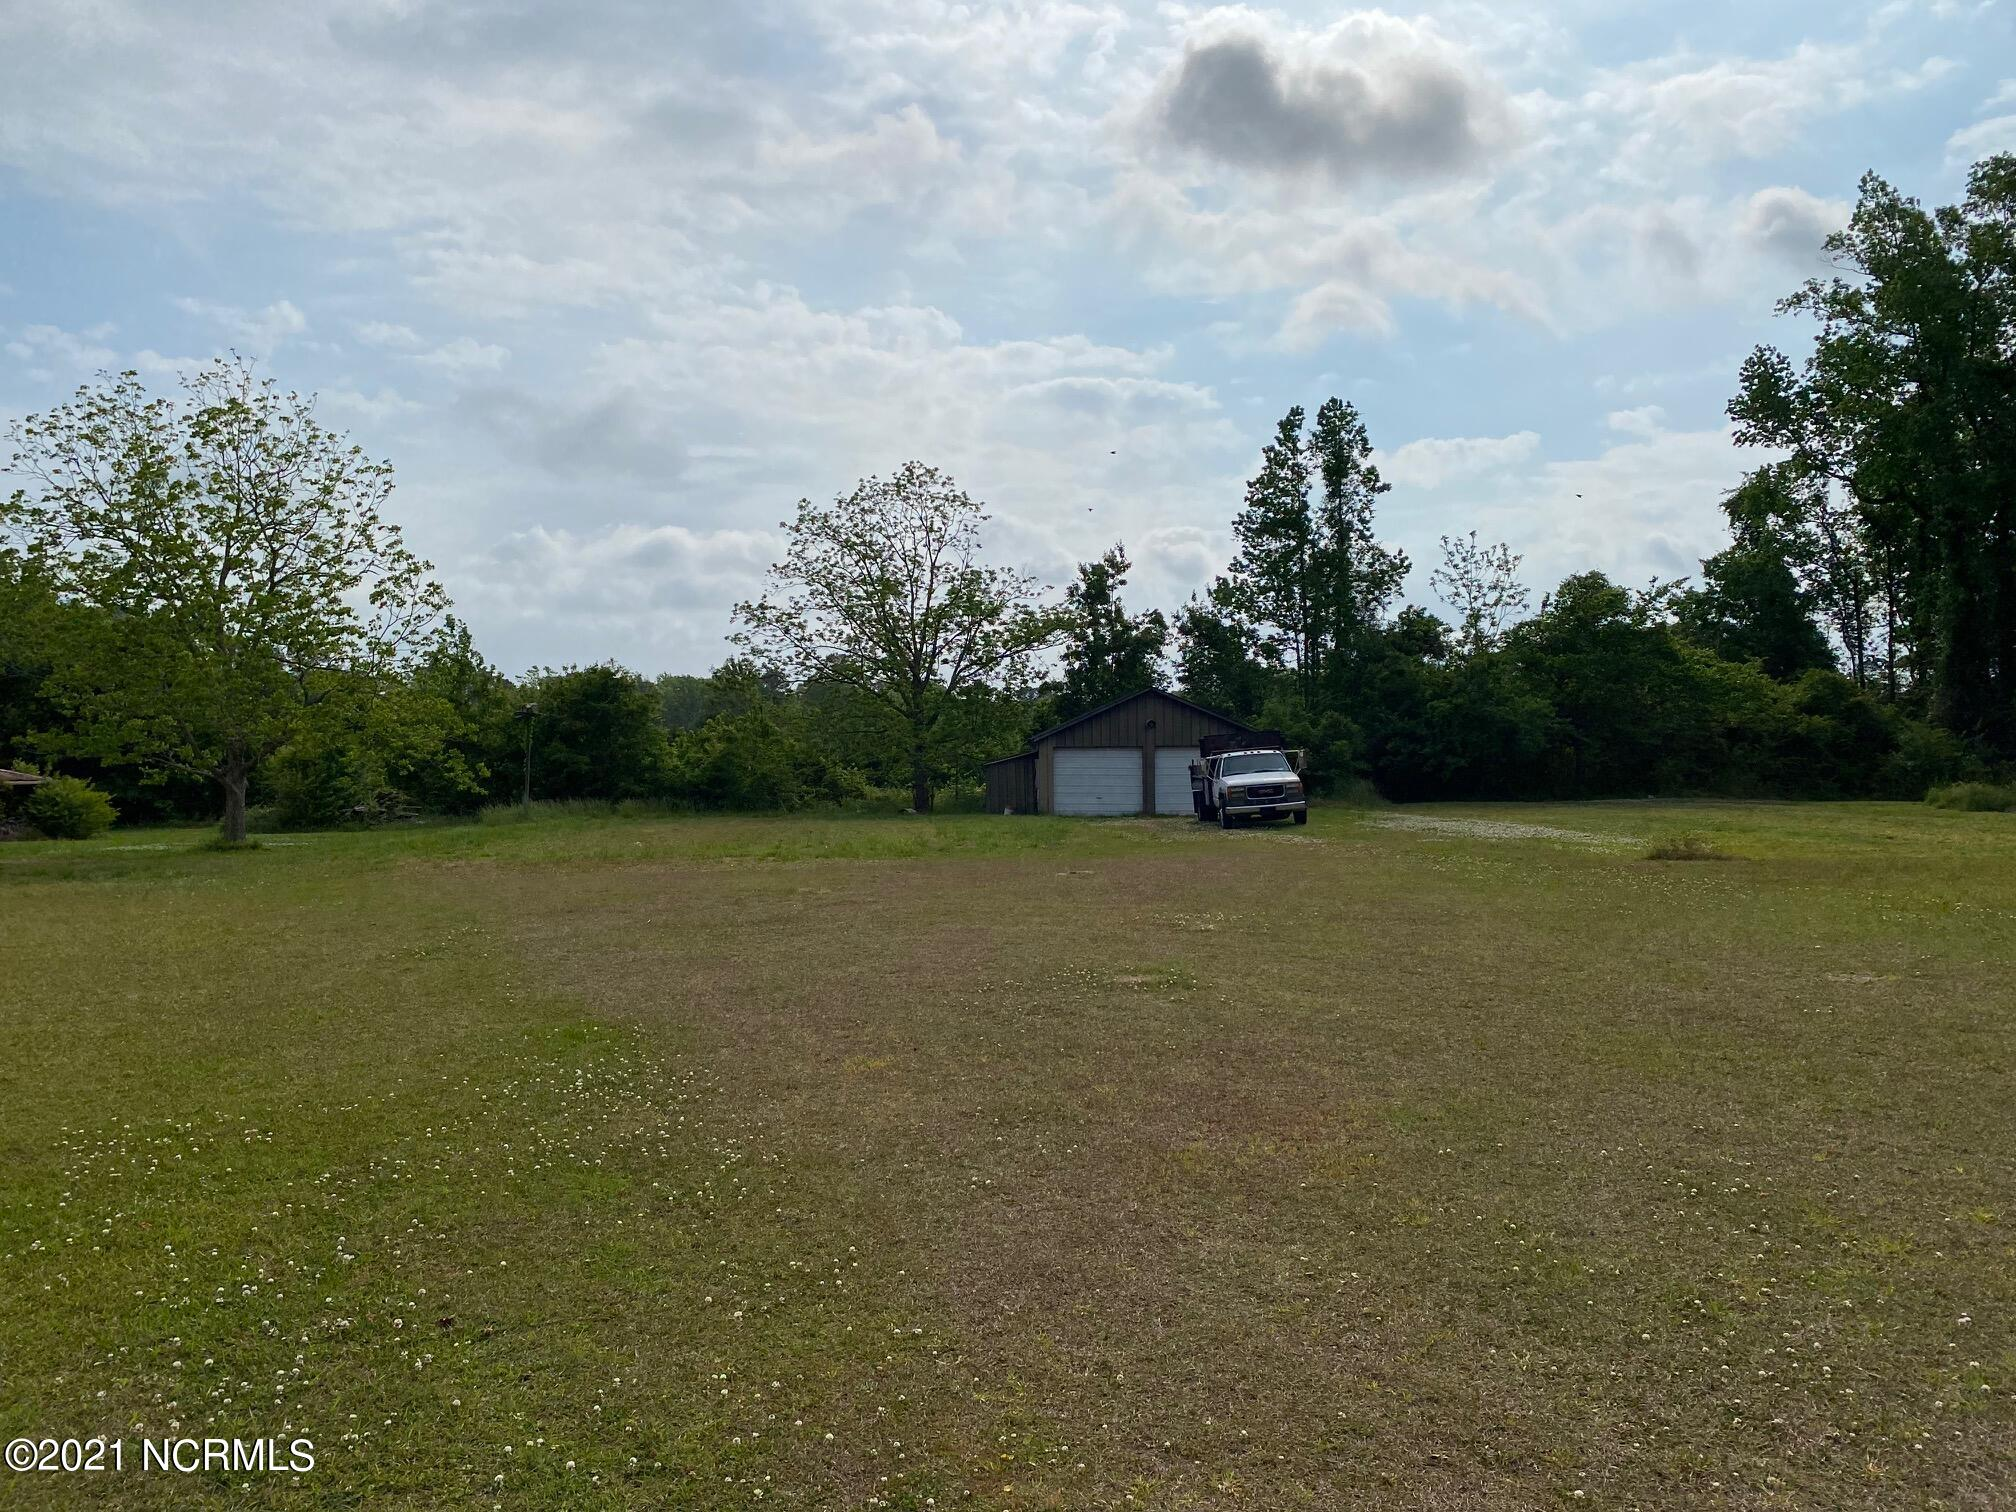 Half acre lot located in a country setting in Verona. The lot is being sold with a 2 car garage that the previous owner used as a workshop. The garage is being sold as-is.